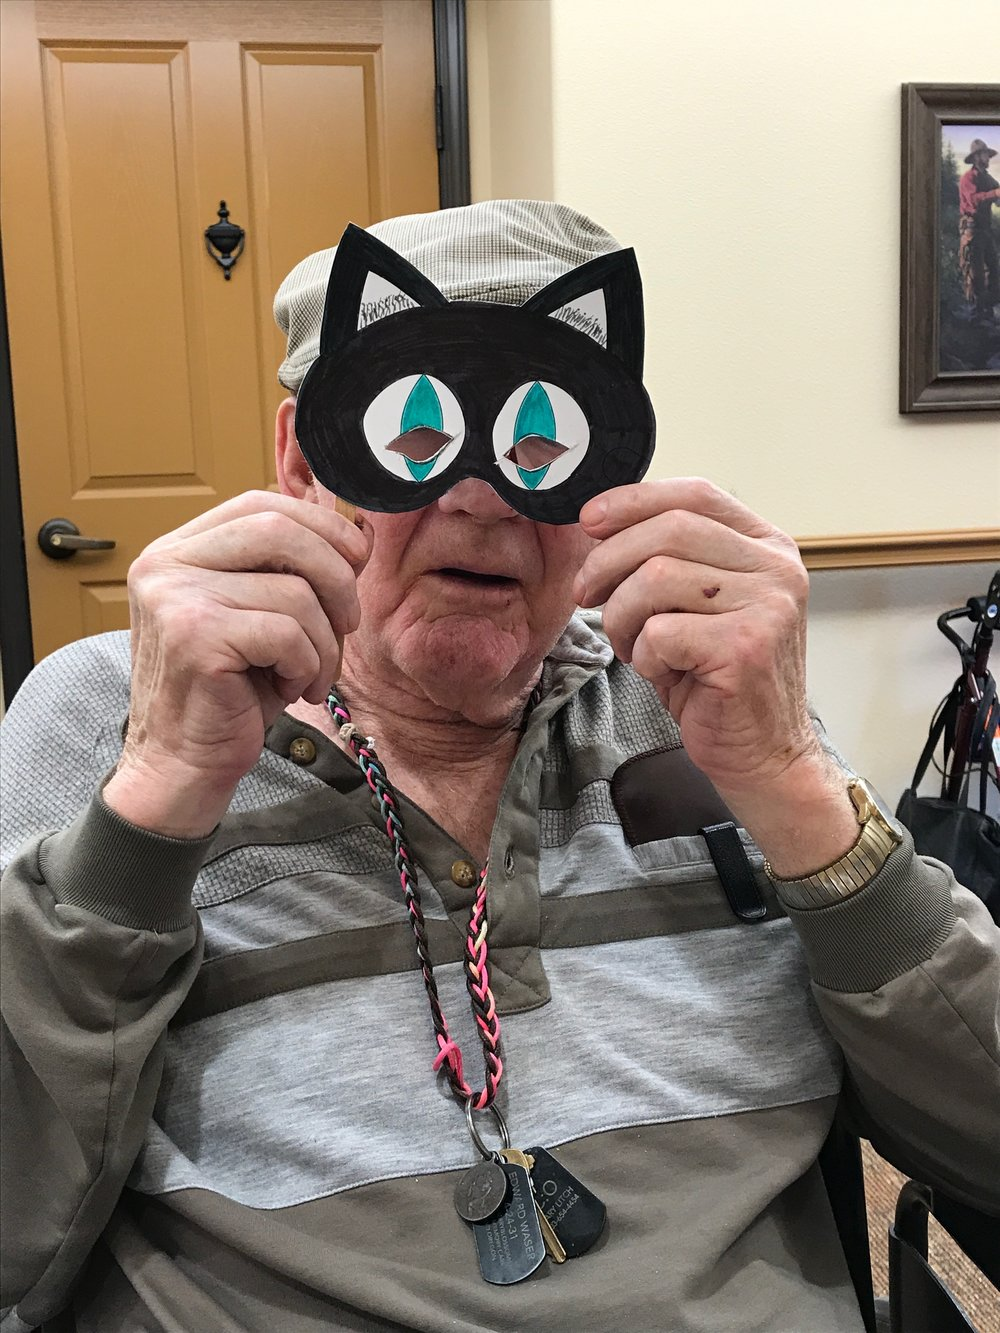 Ed and his cat mask!